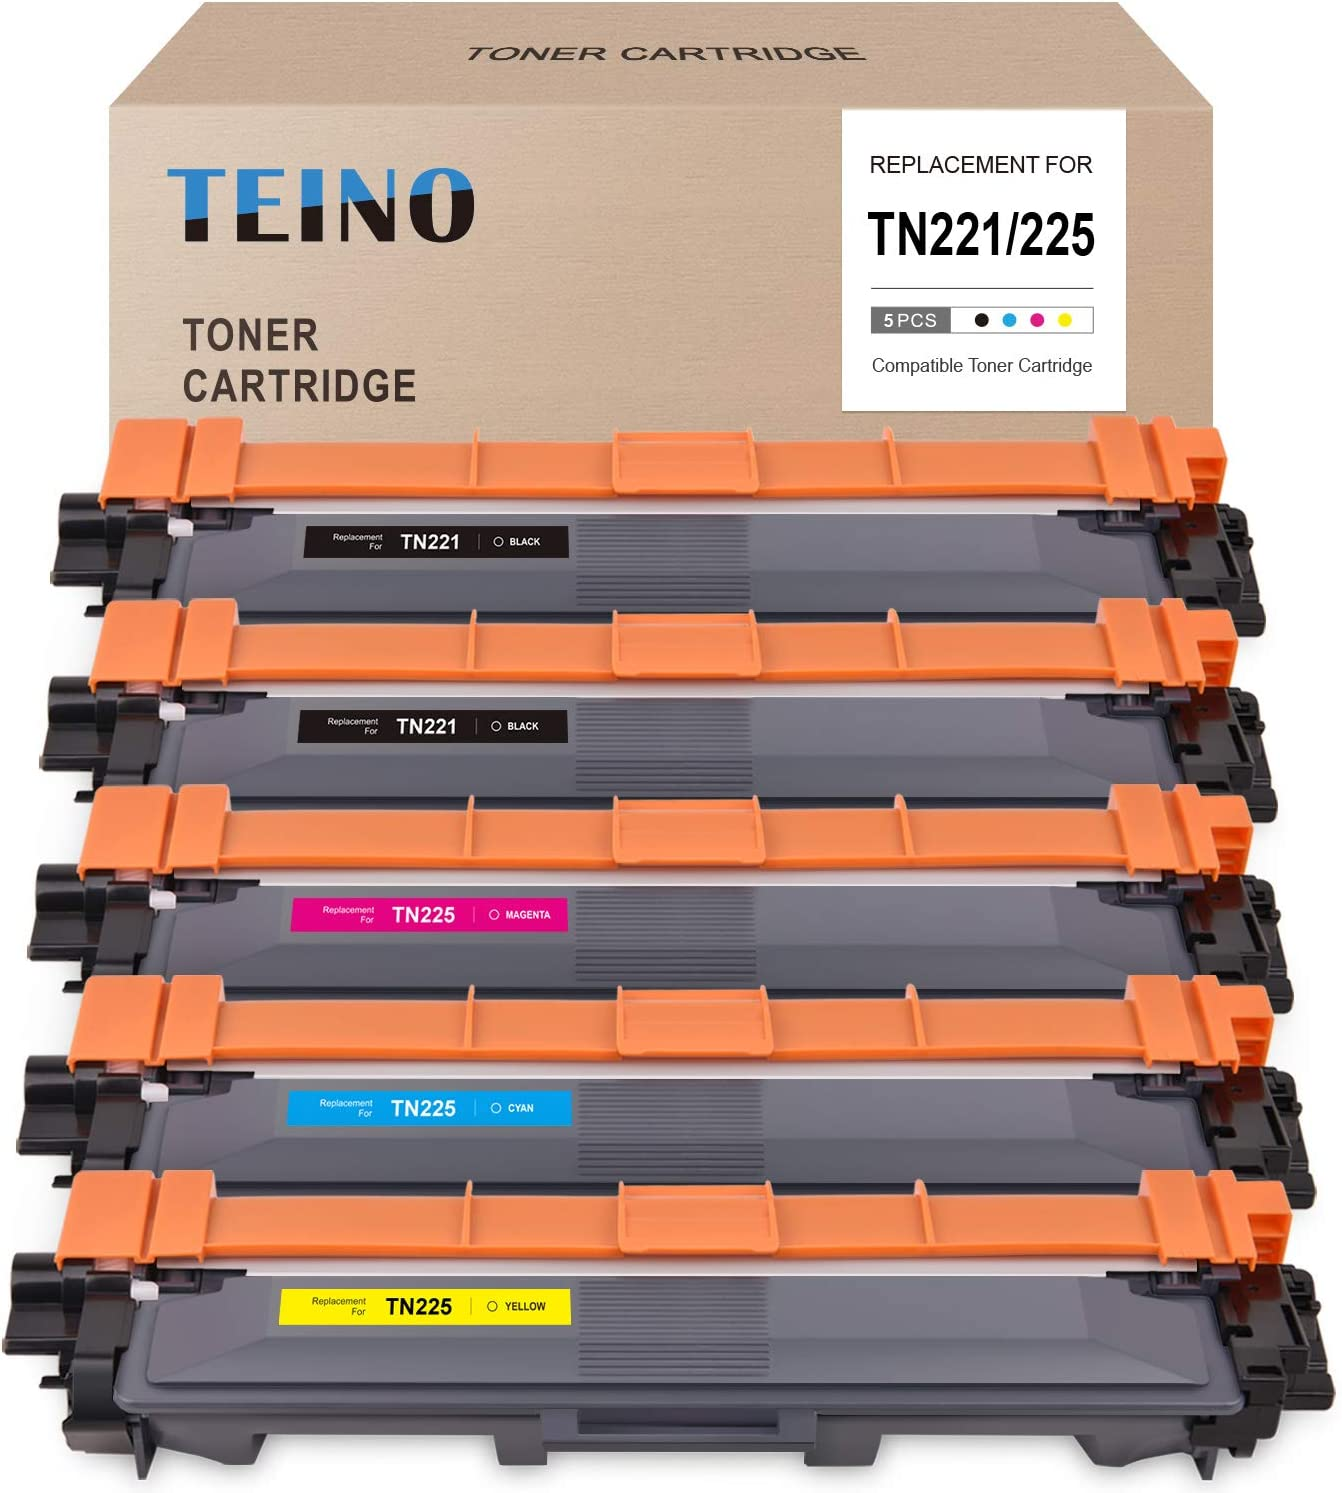 TEINO Compatible Toner Cartridge Replacement for Brother TN221 TN225 use with Brother HL-3140CW 3170CDW 3150CDW MFC-9130CW 9340CDW 9330CDW 9140CDN (Black Cyan Magenta Yellow, 5-Pack)